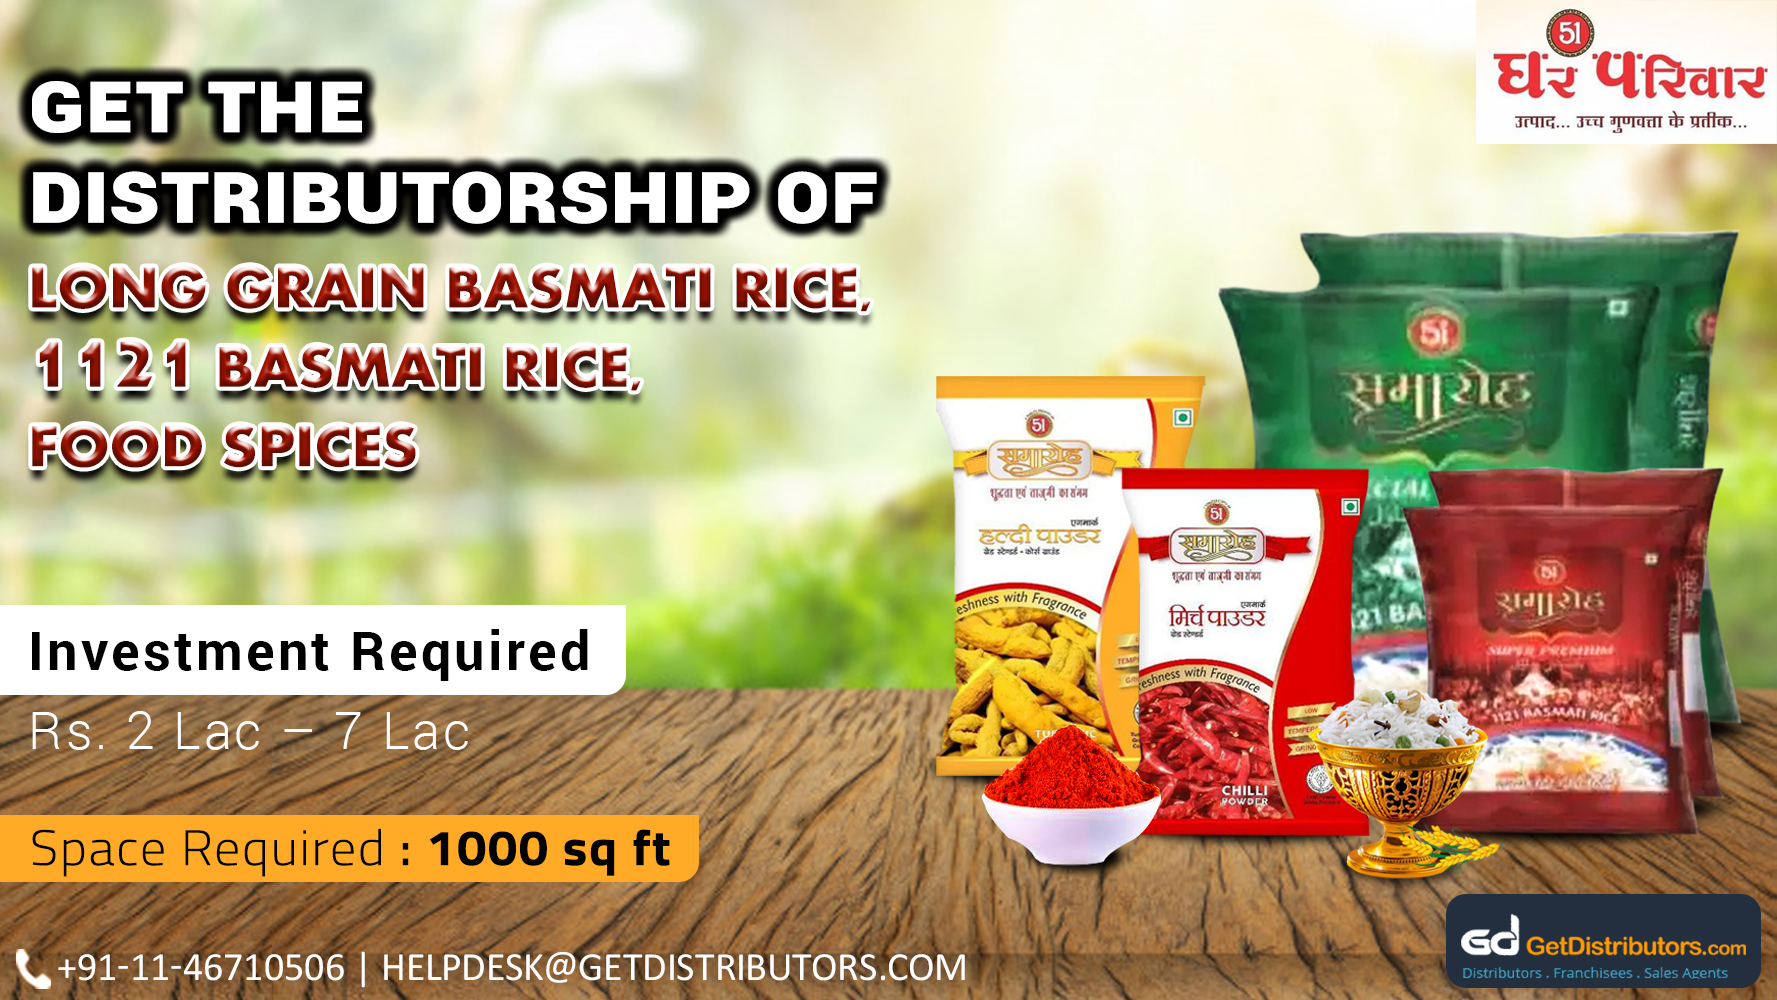 Superior Quality Basmati Rice And Food Spices At Cost-Effective Prices